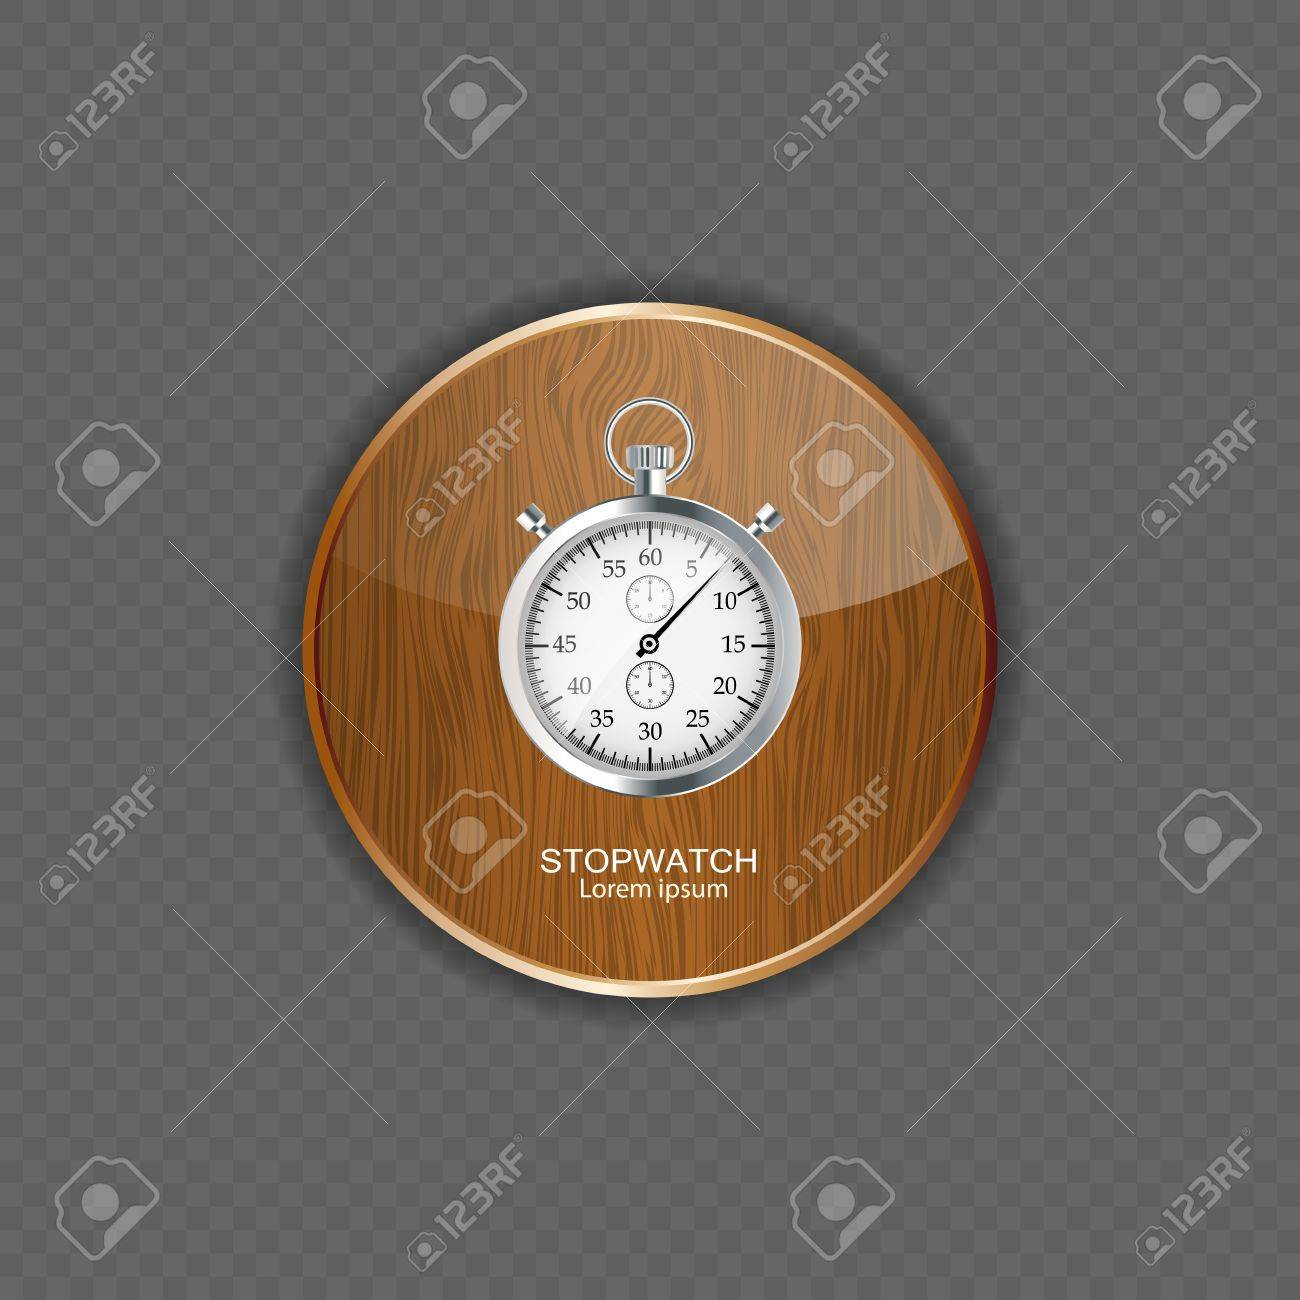 Stopwatch wood application icons vector illustration Stock Vector - 21878487